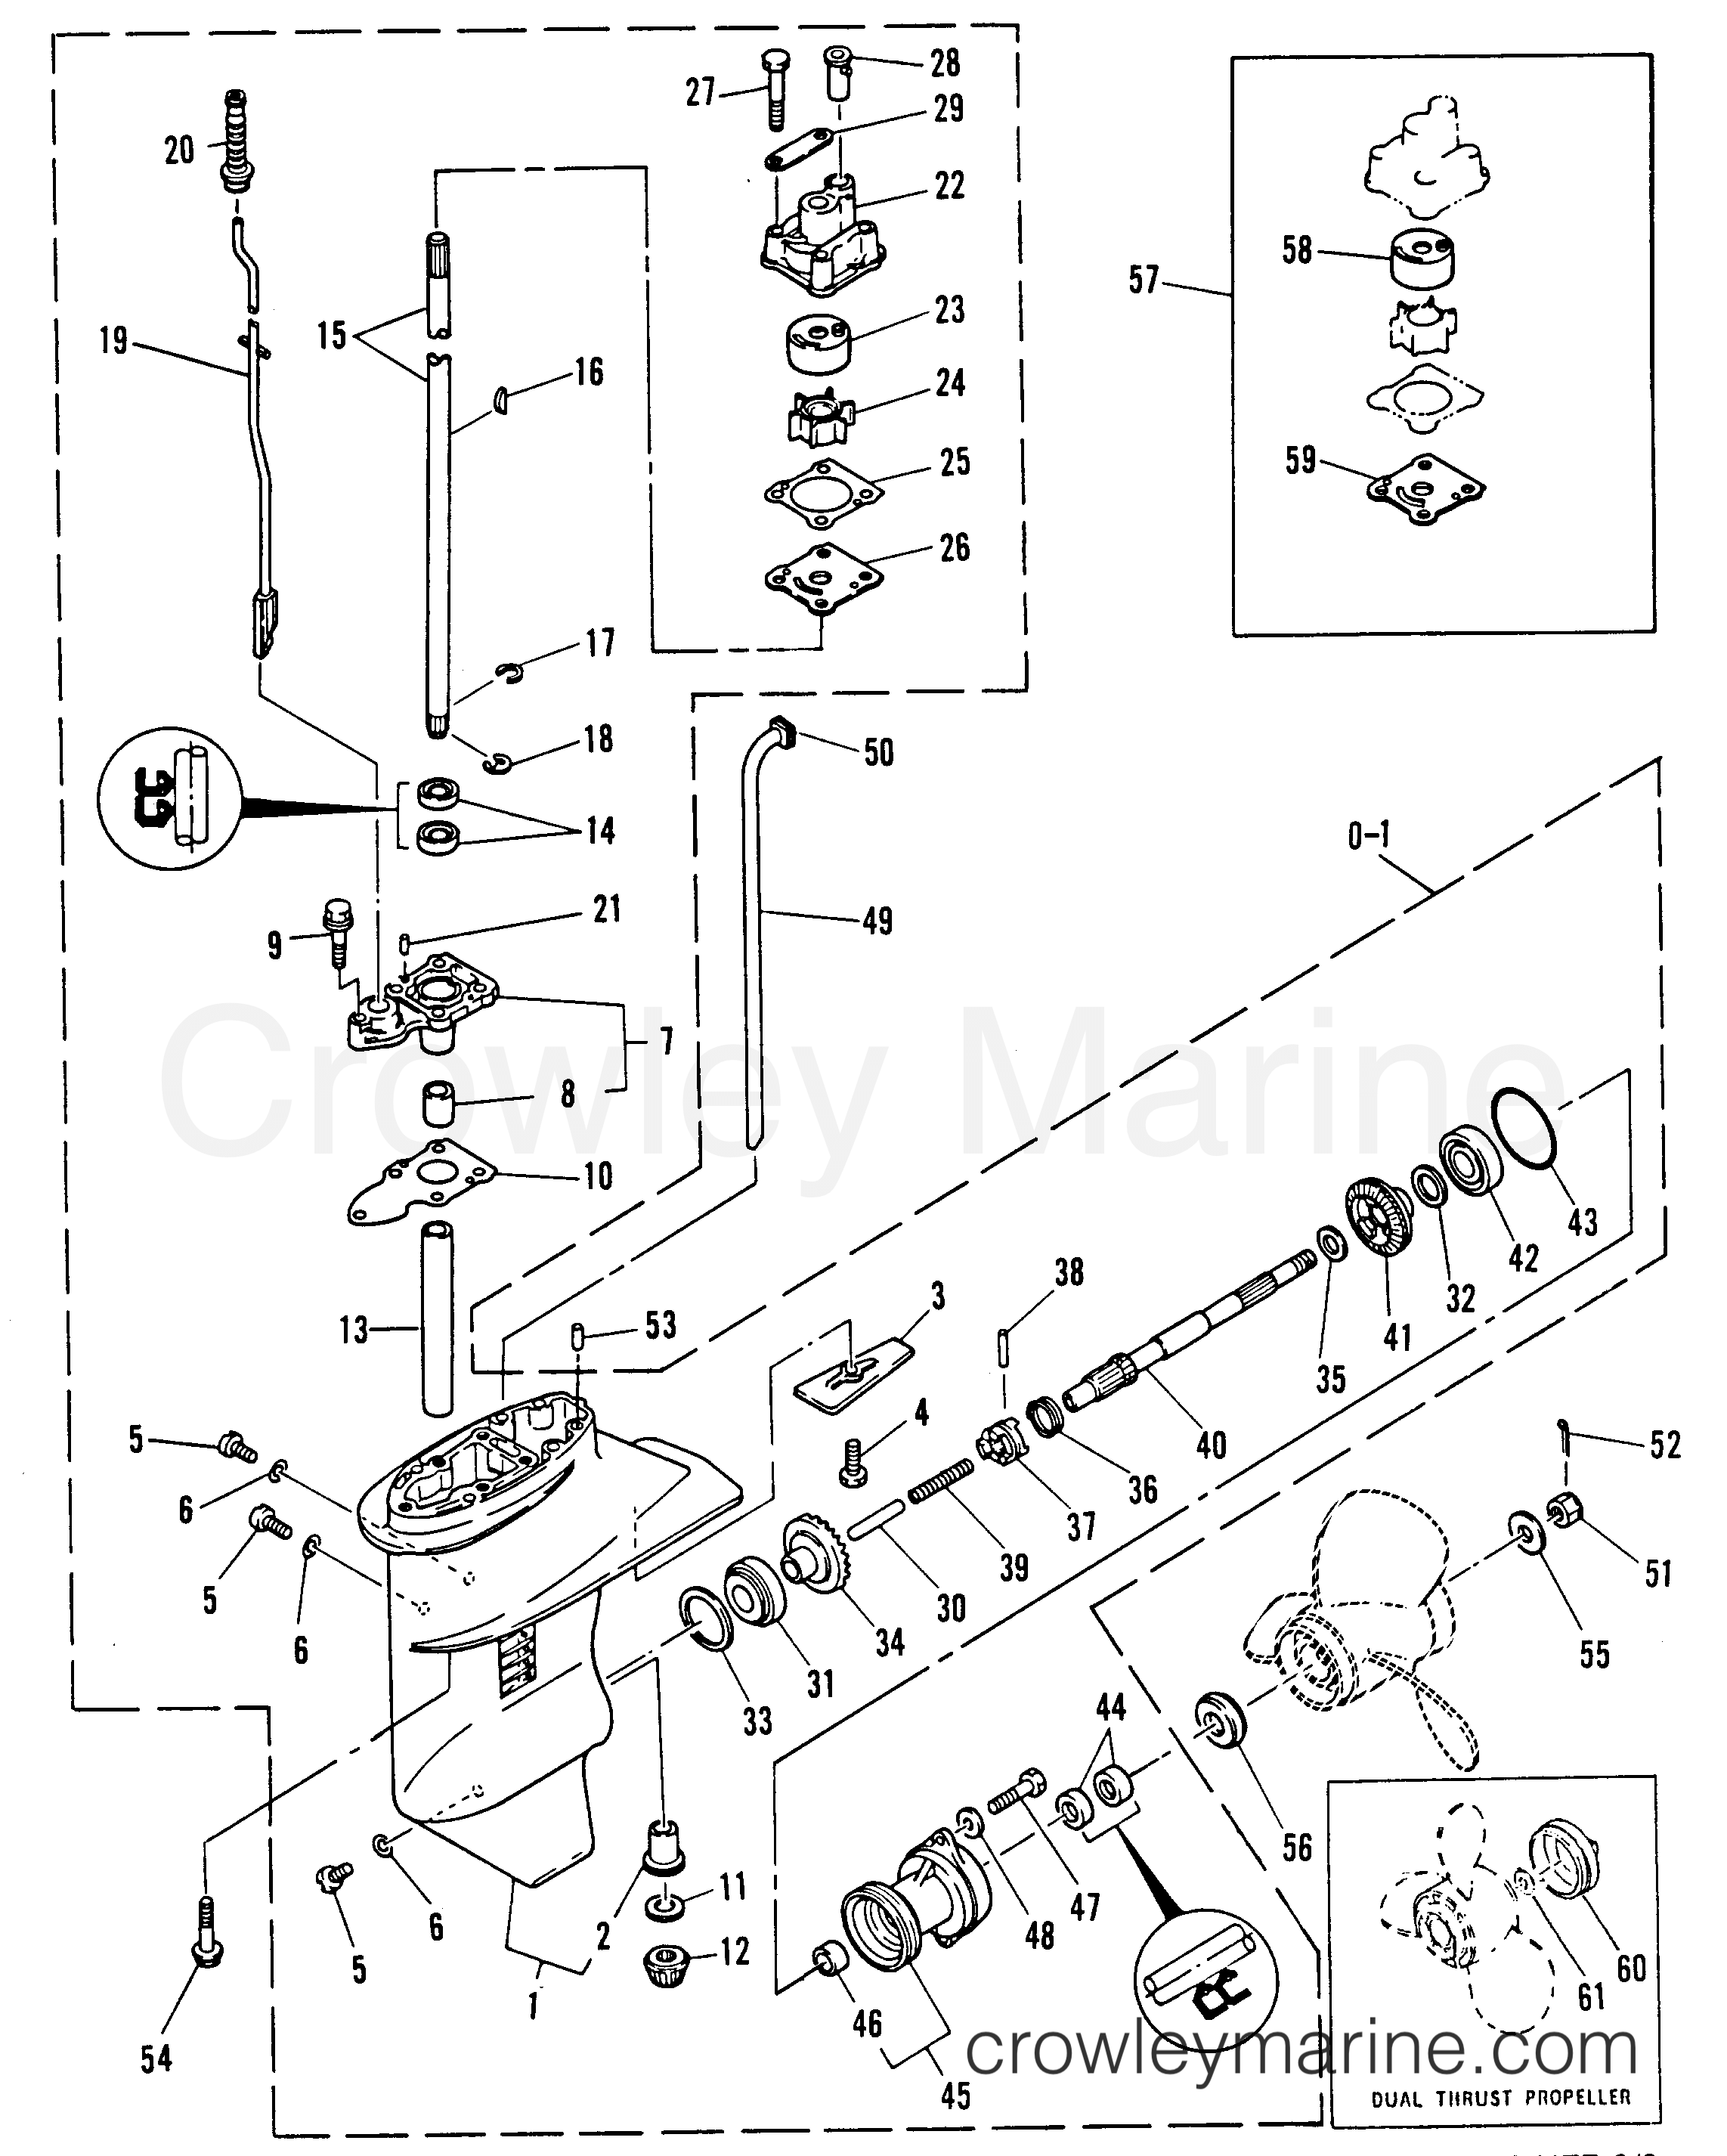 Gearhousing Assembly